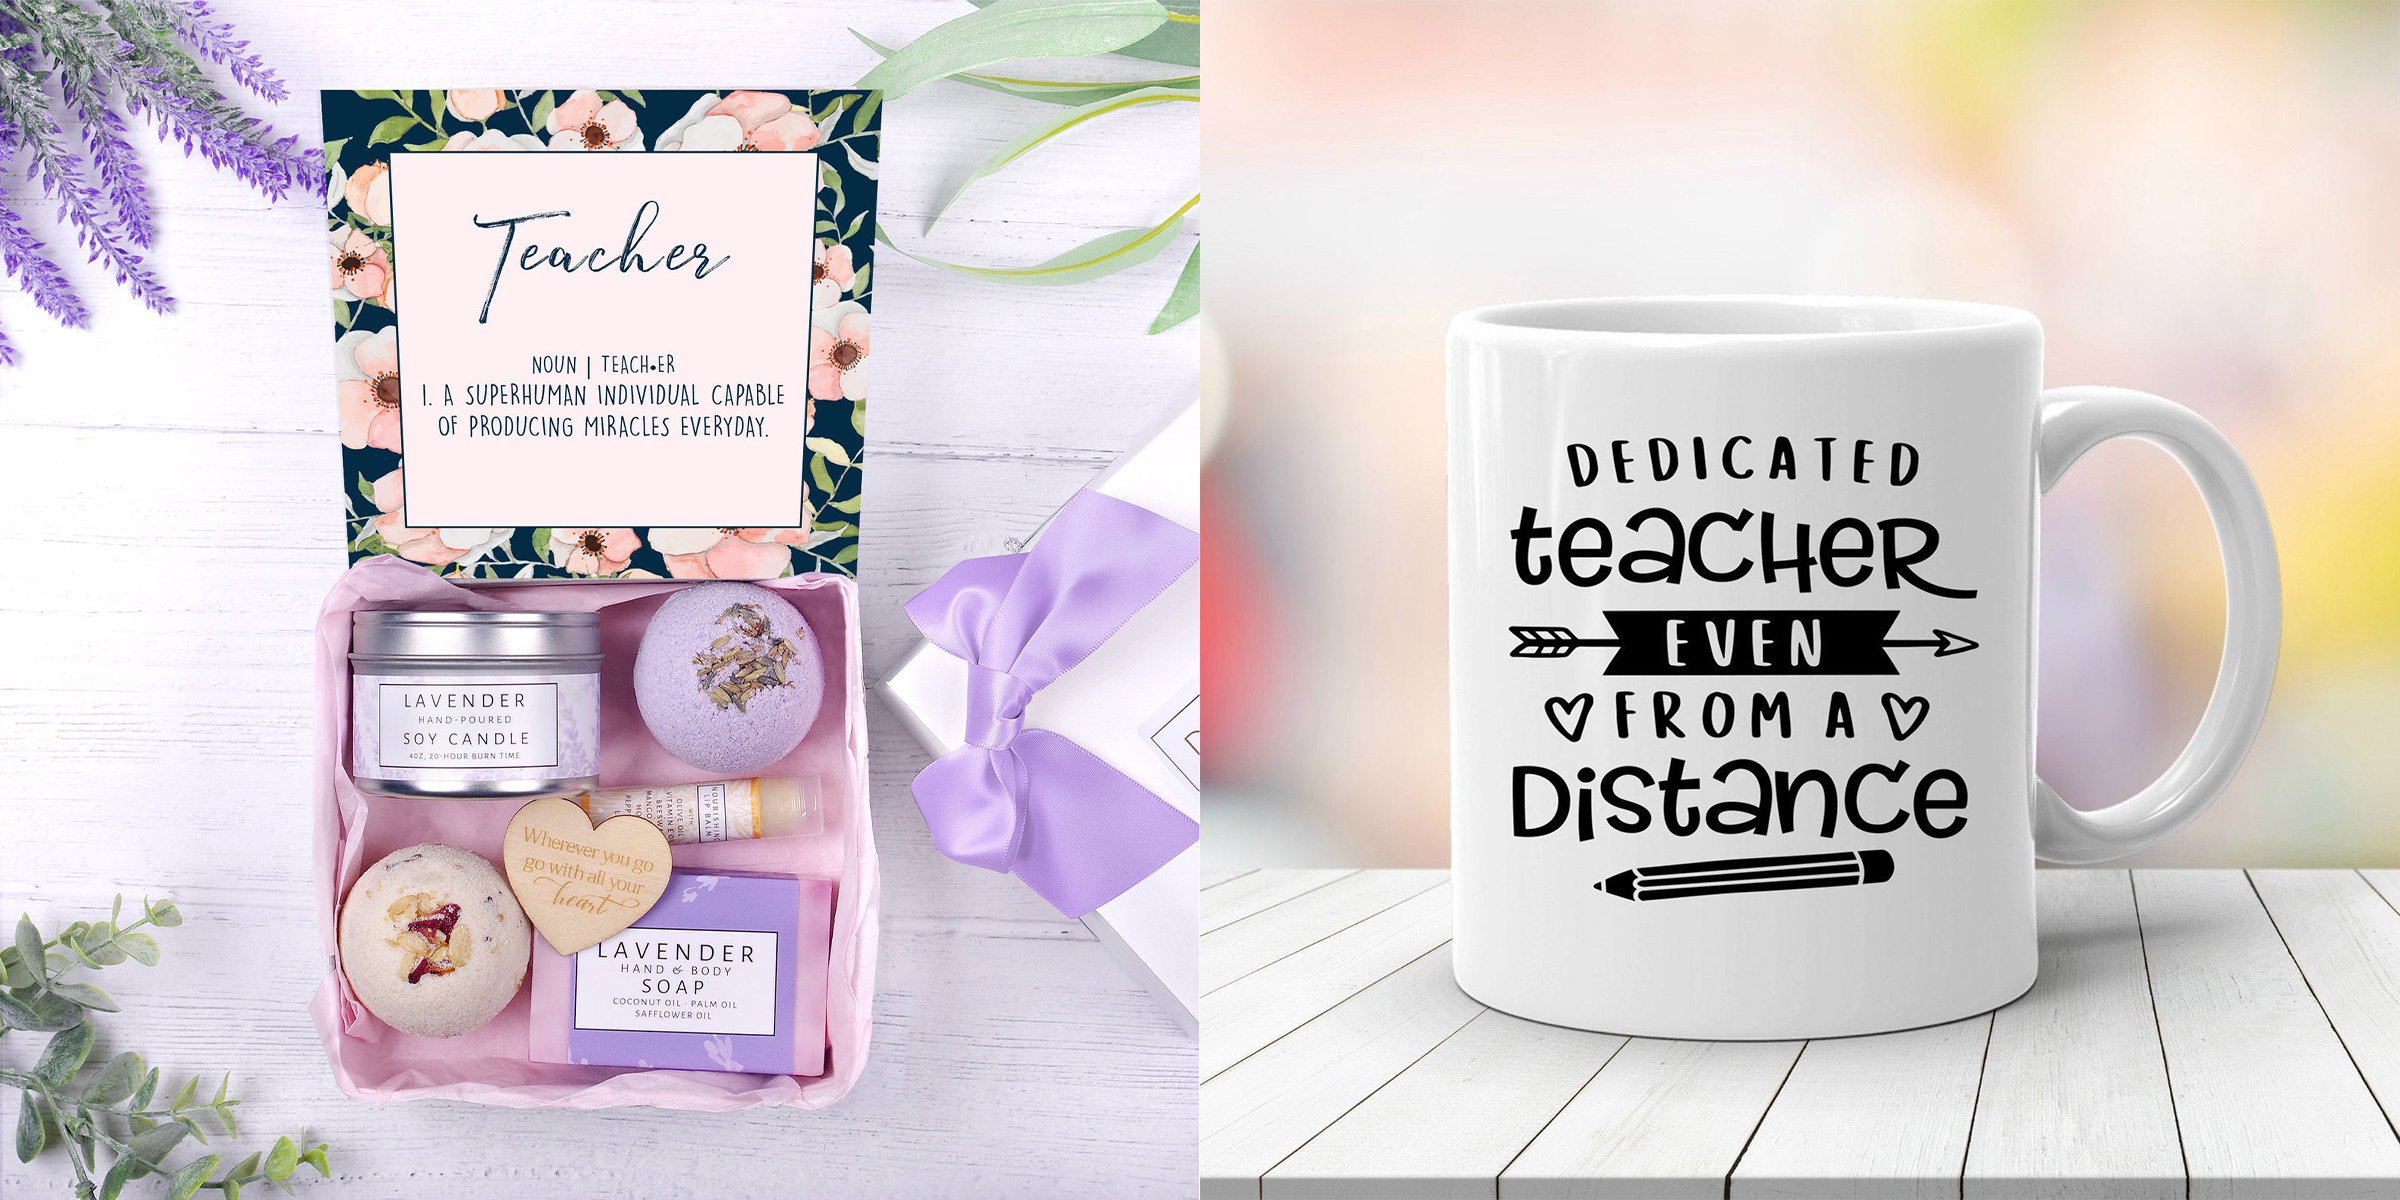 Teacher Personalized Gift Inspirational Necklace Teacher Gift Teacher Christmas End Year Teacher Thank You Gift For TEACHER